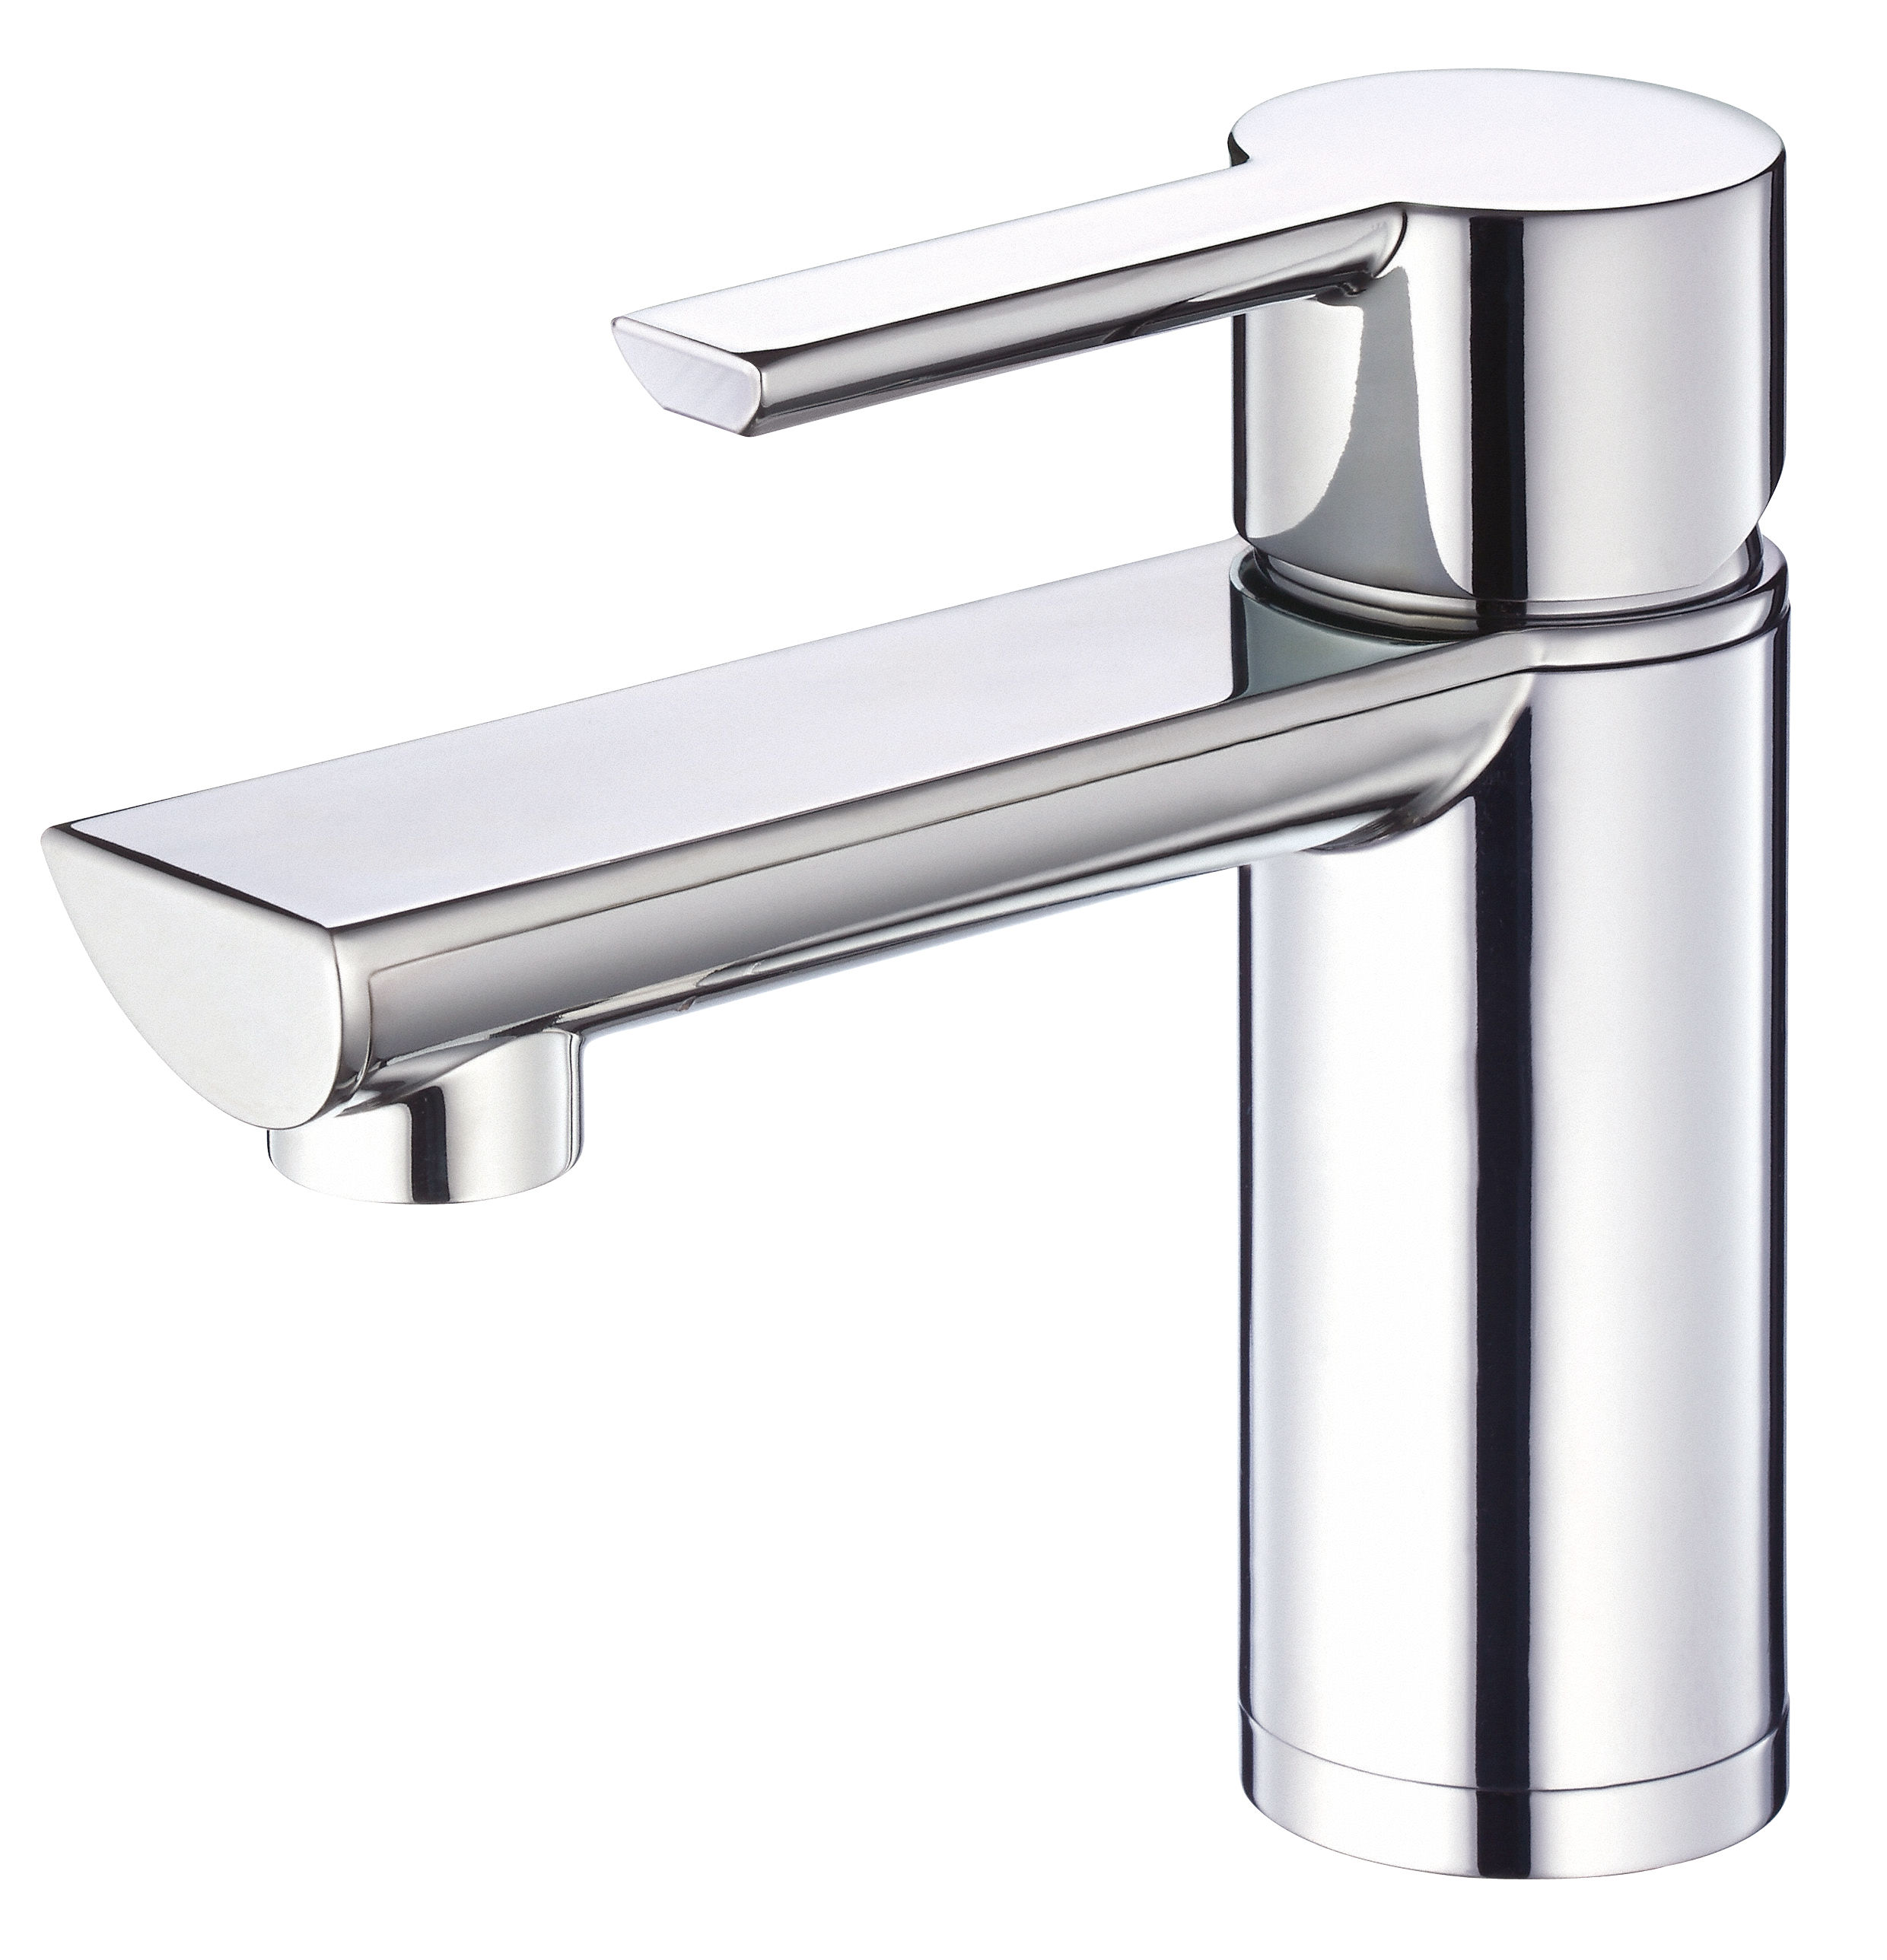 concept olskar faucets intended decor adorable com ikea bath decorate r olsk also house for great faucet bathroom